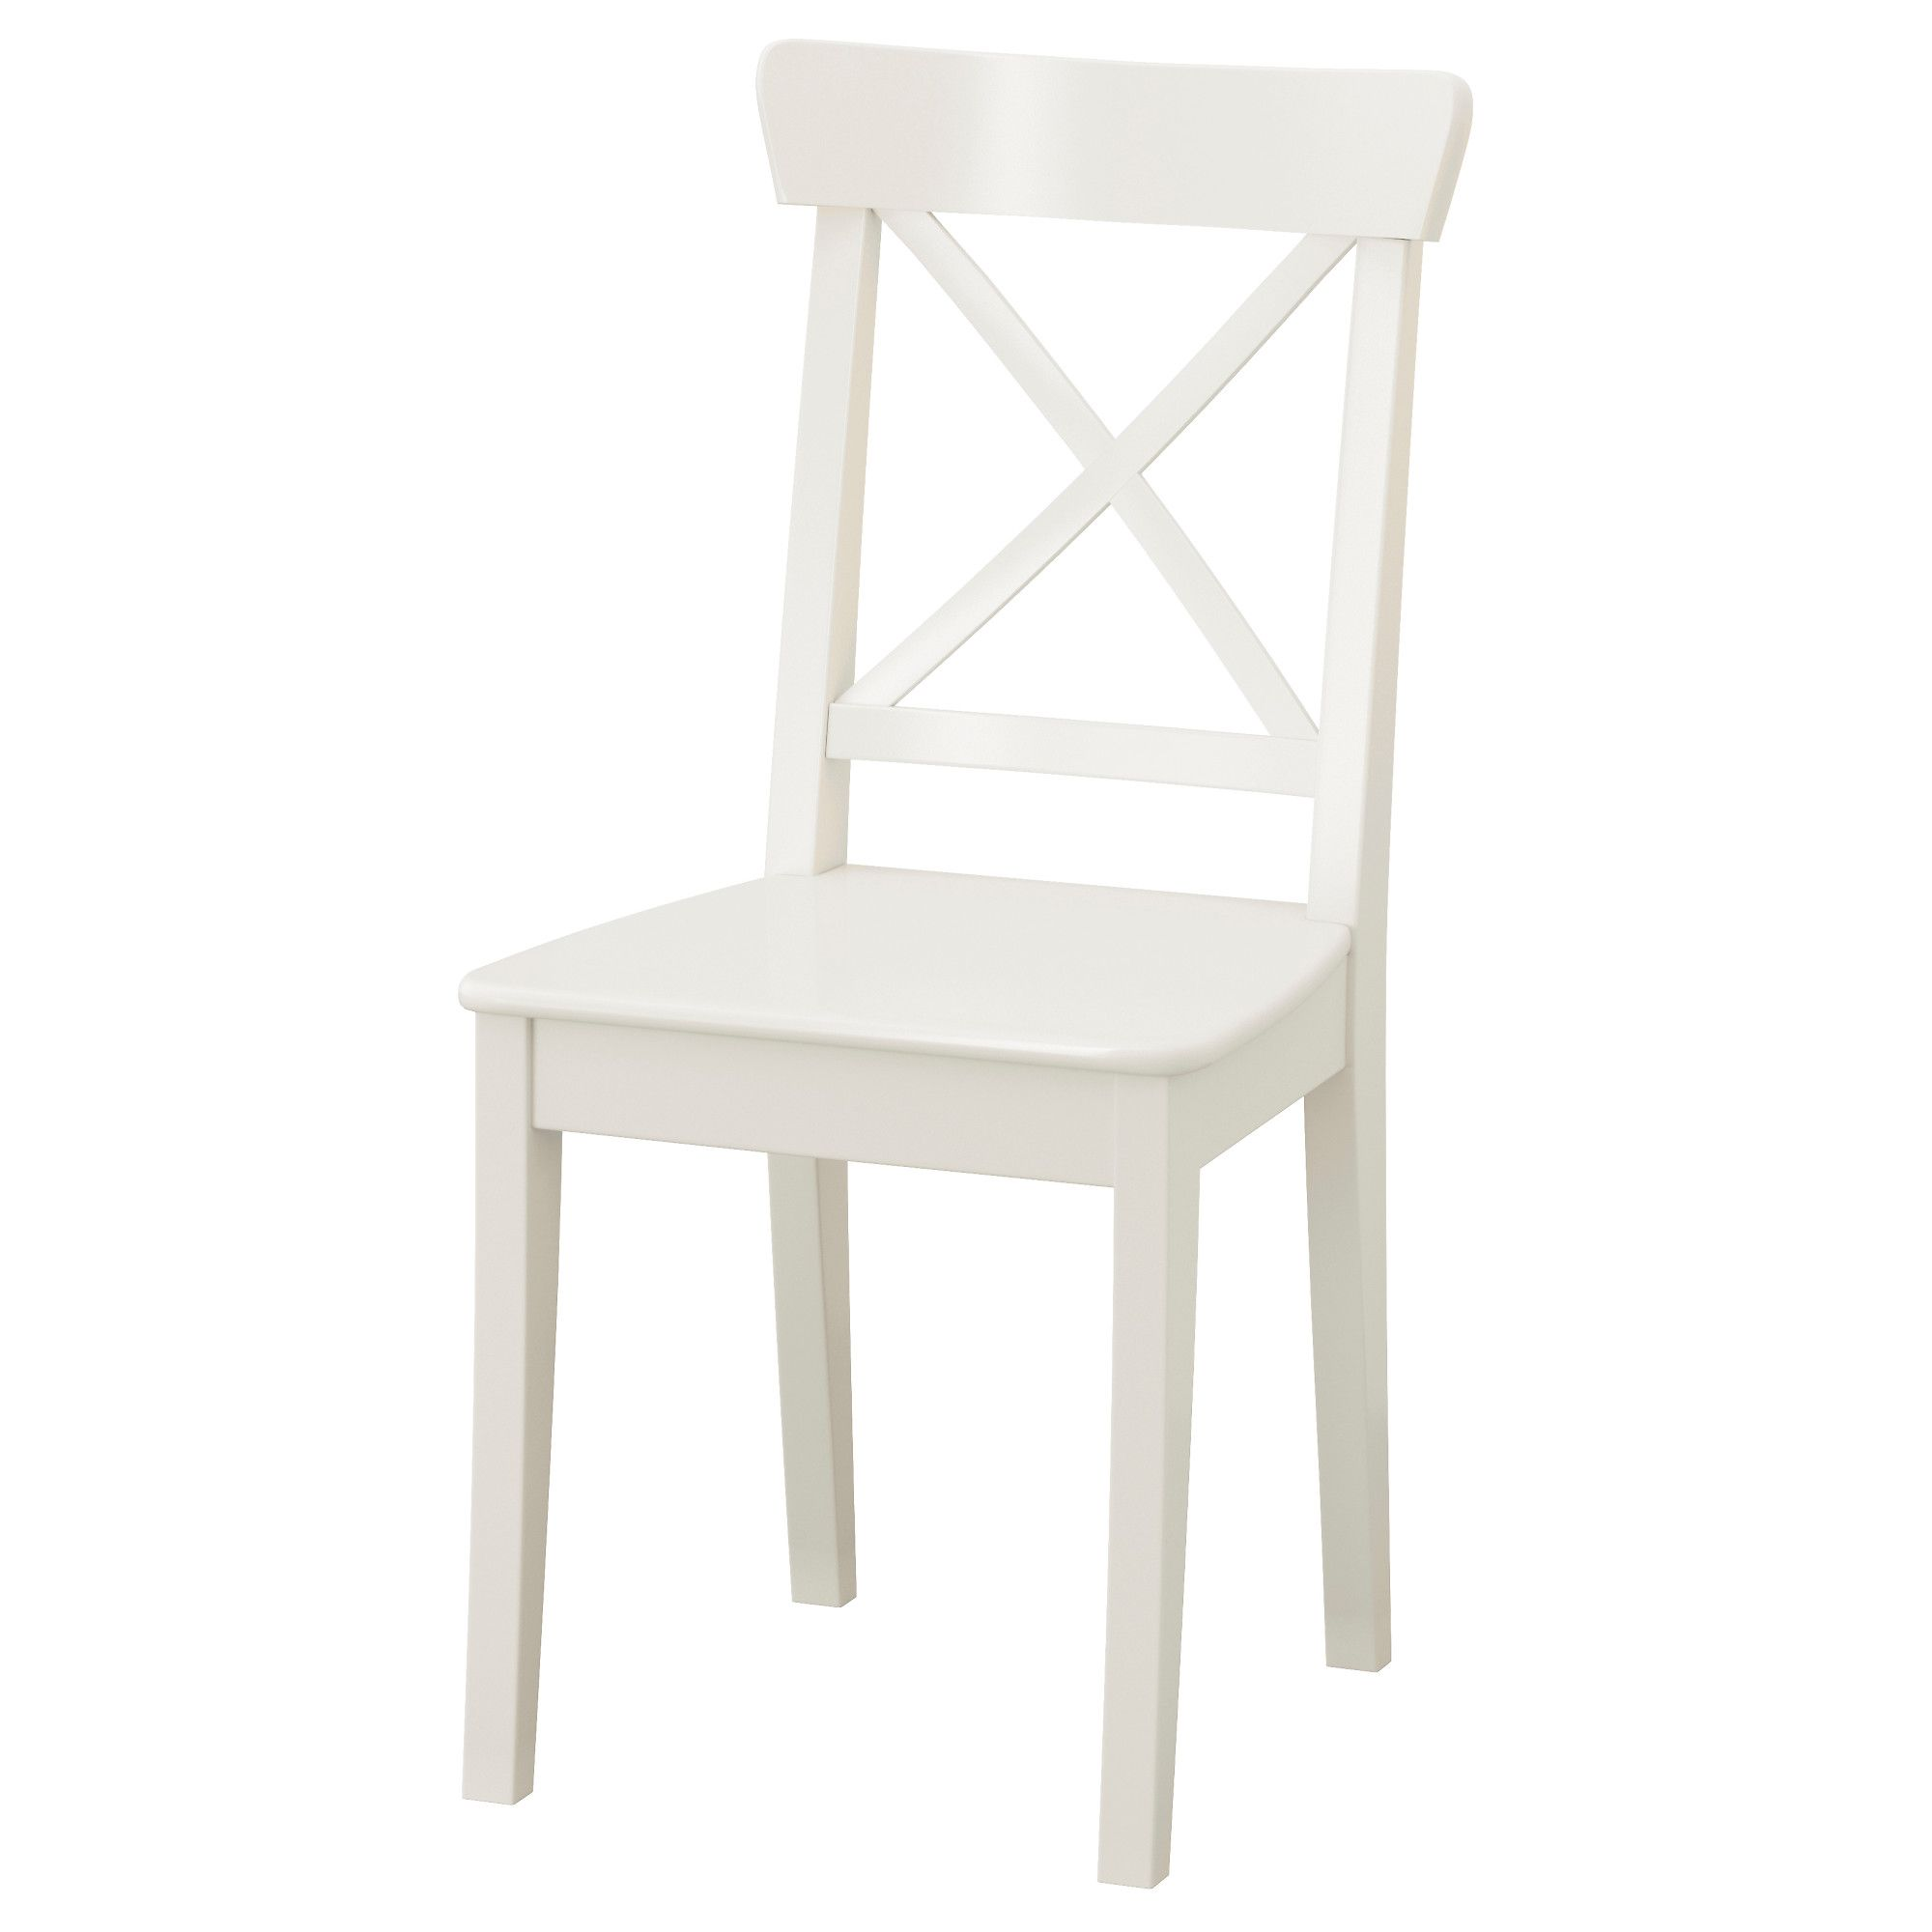 Ikea Ingolf Chair Solid Wood Is A Durable Natural Material